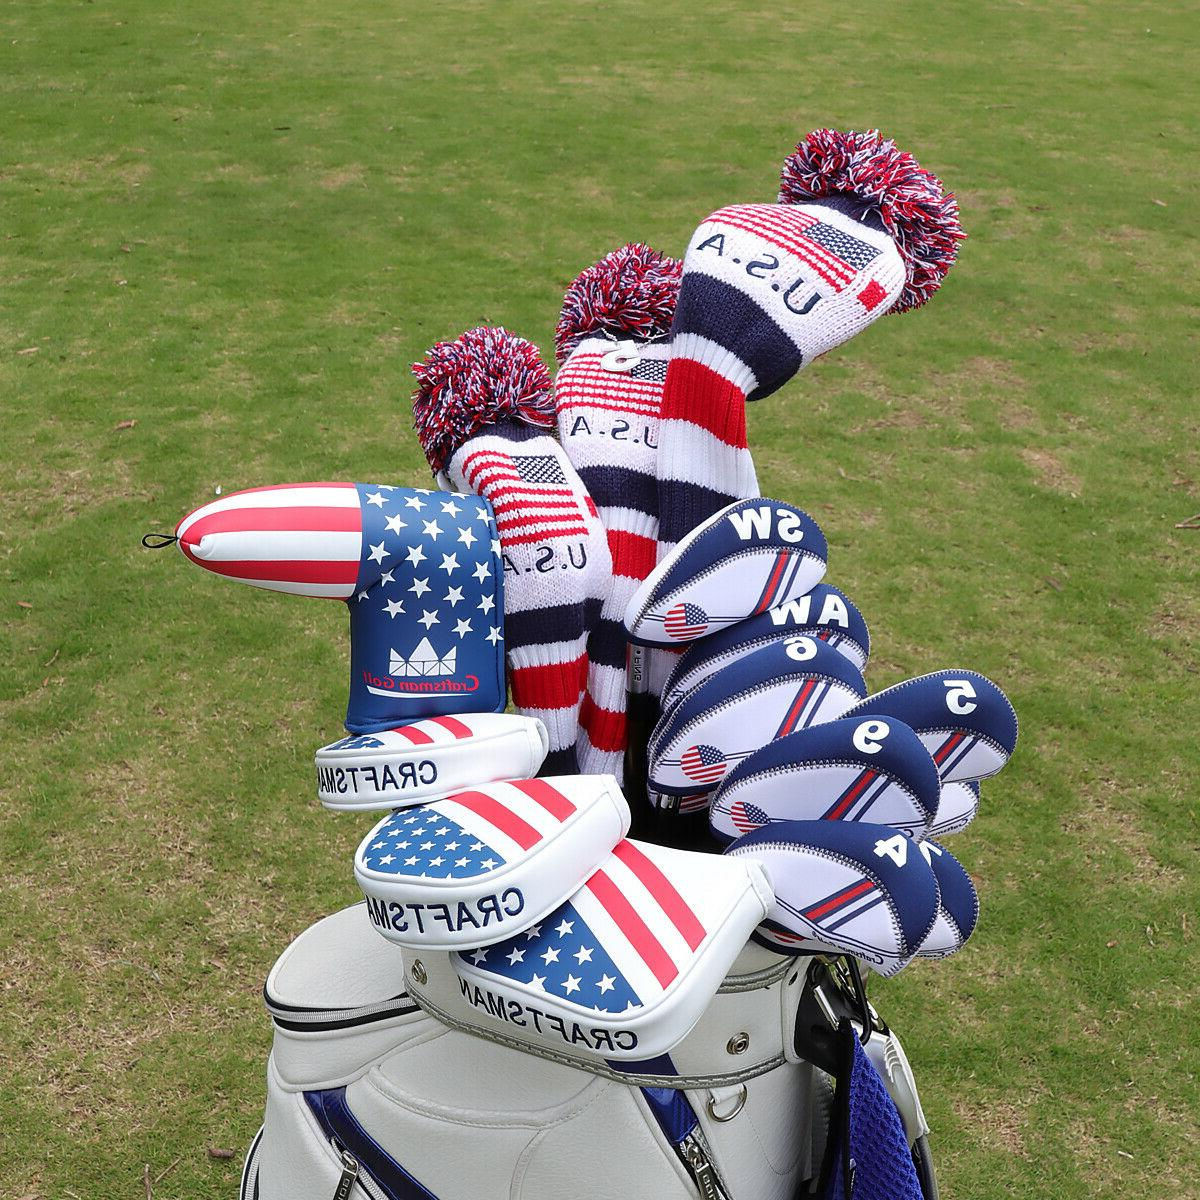 USA GOLF Blade Headcover For New